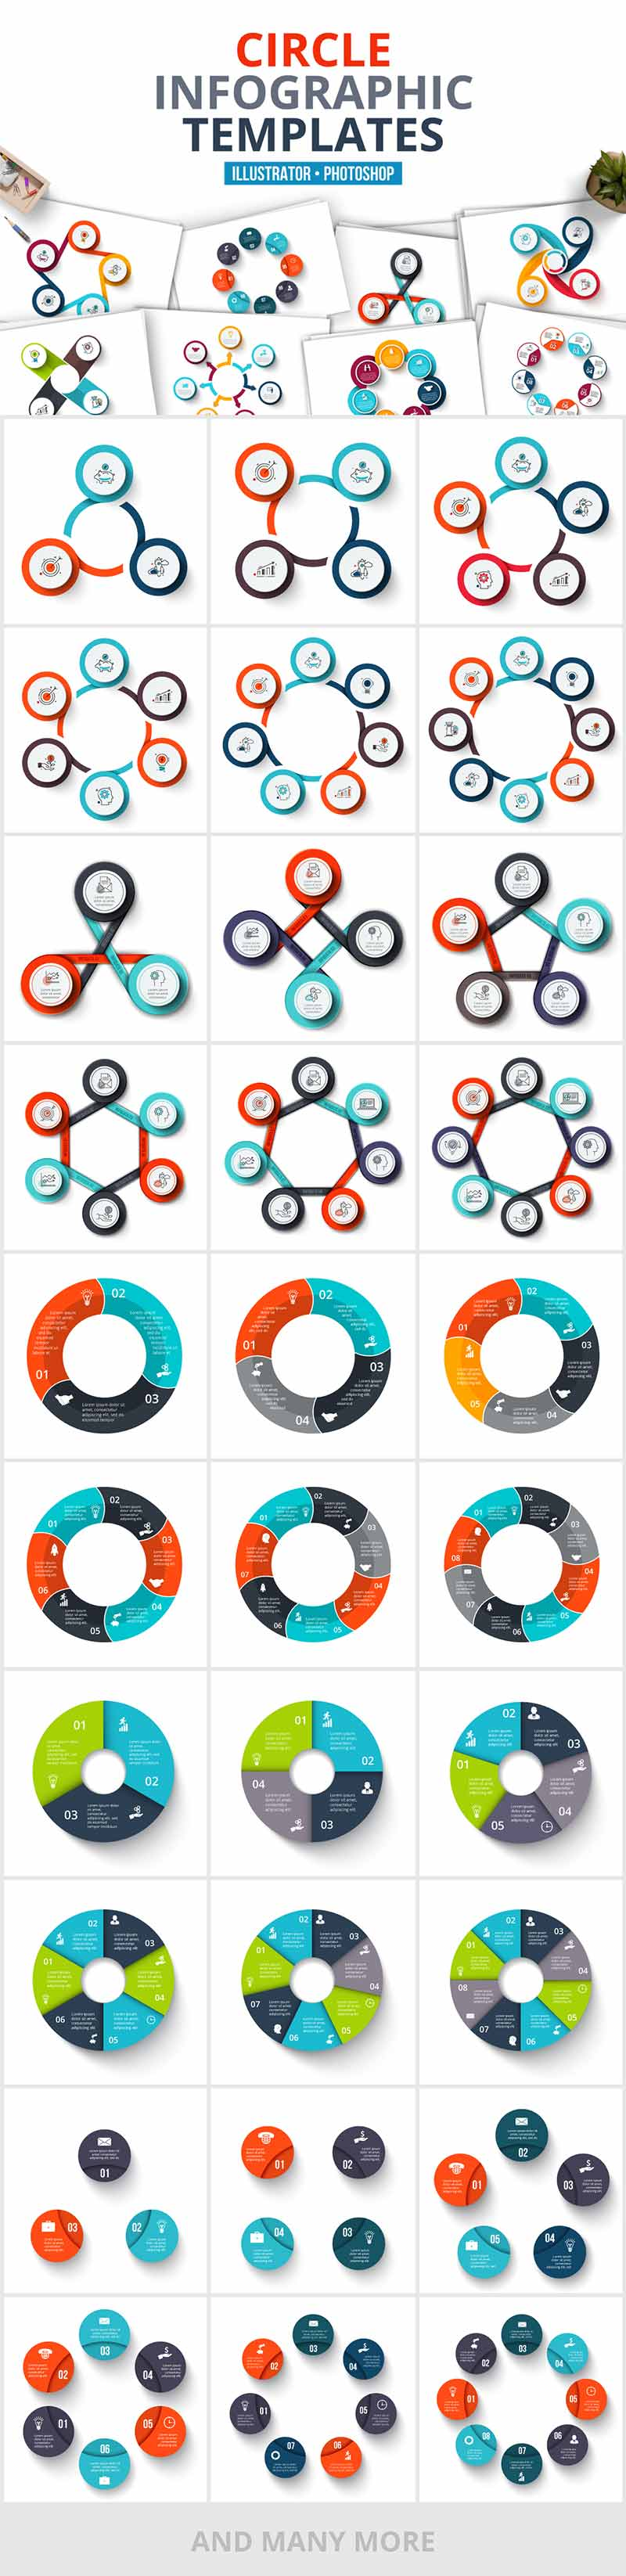 1200 Interactive Infographic Templates- 06_Circles